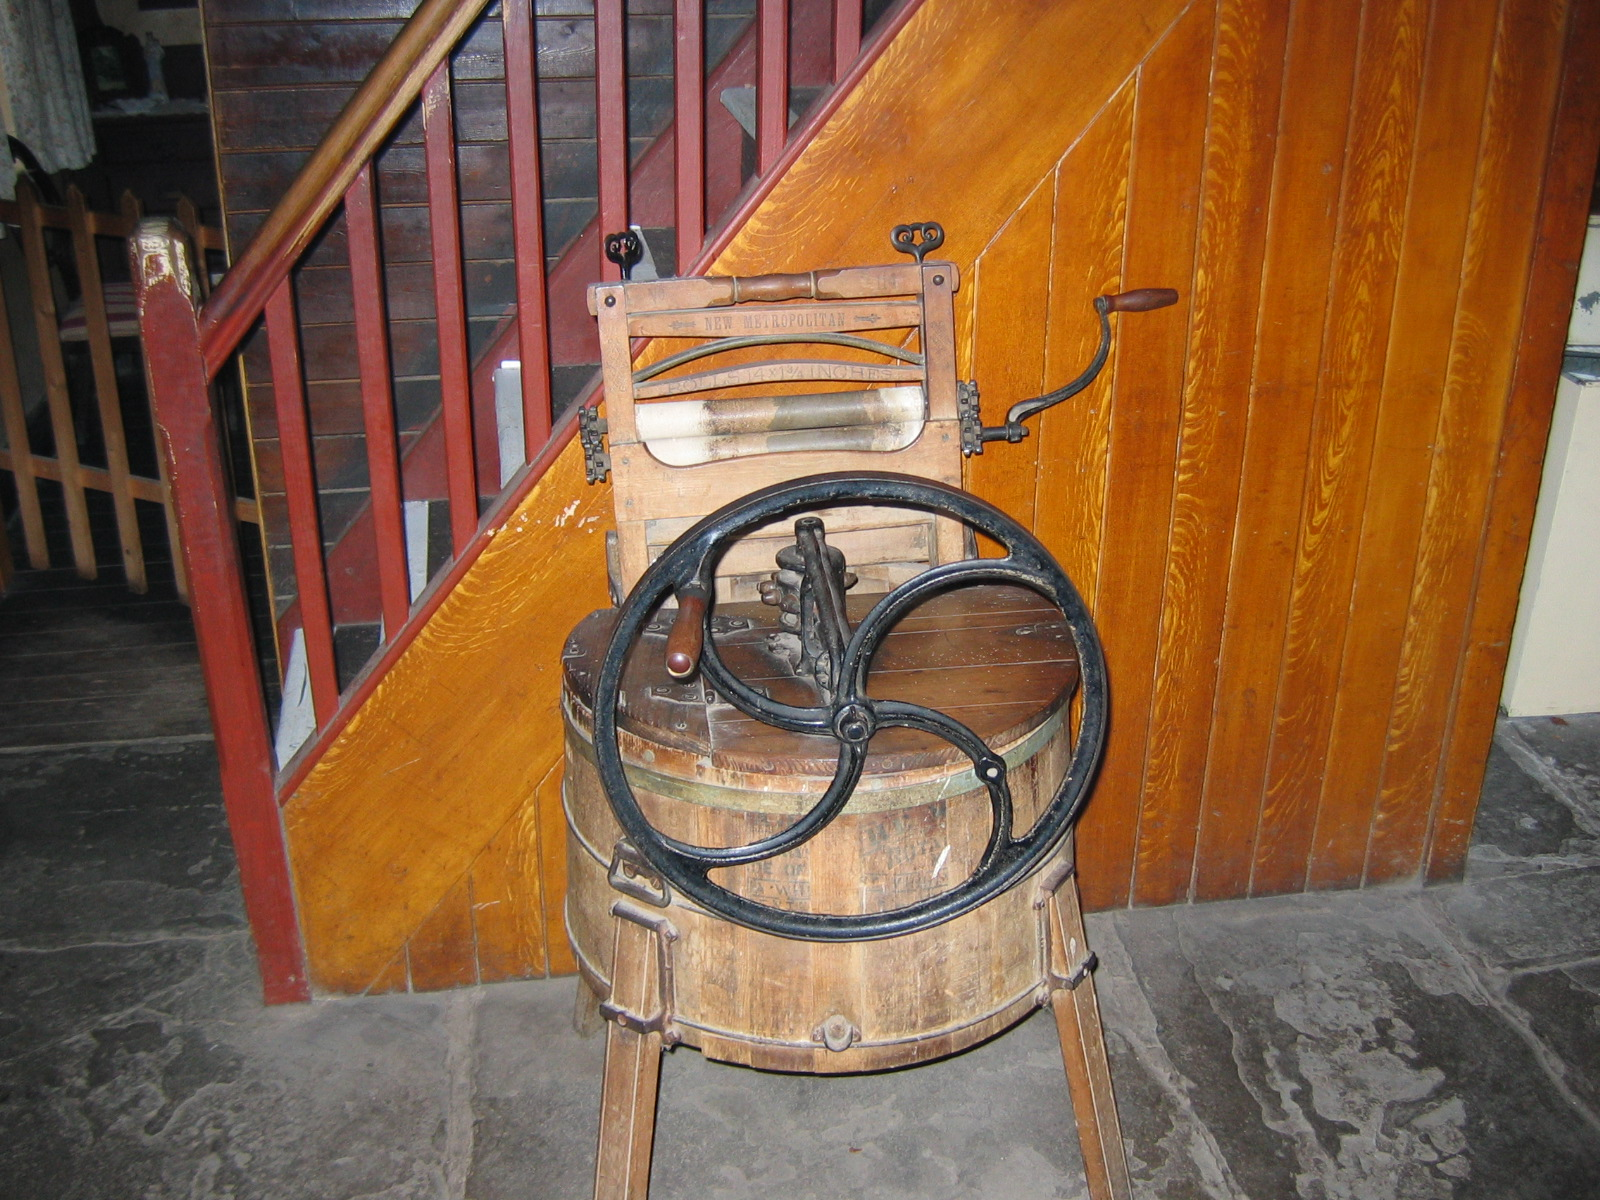 Thor washing machine - Wikipedia, the free encyclopedia